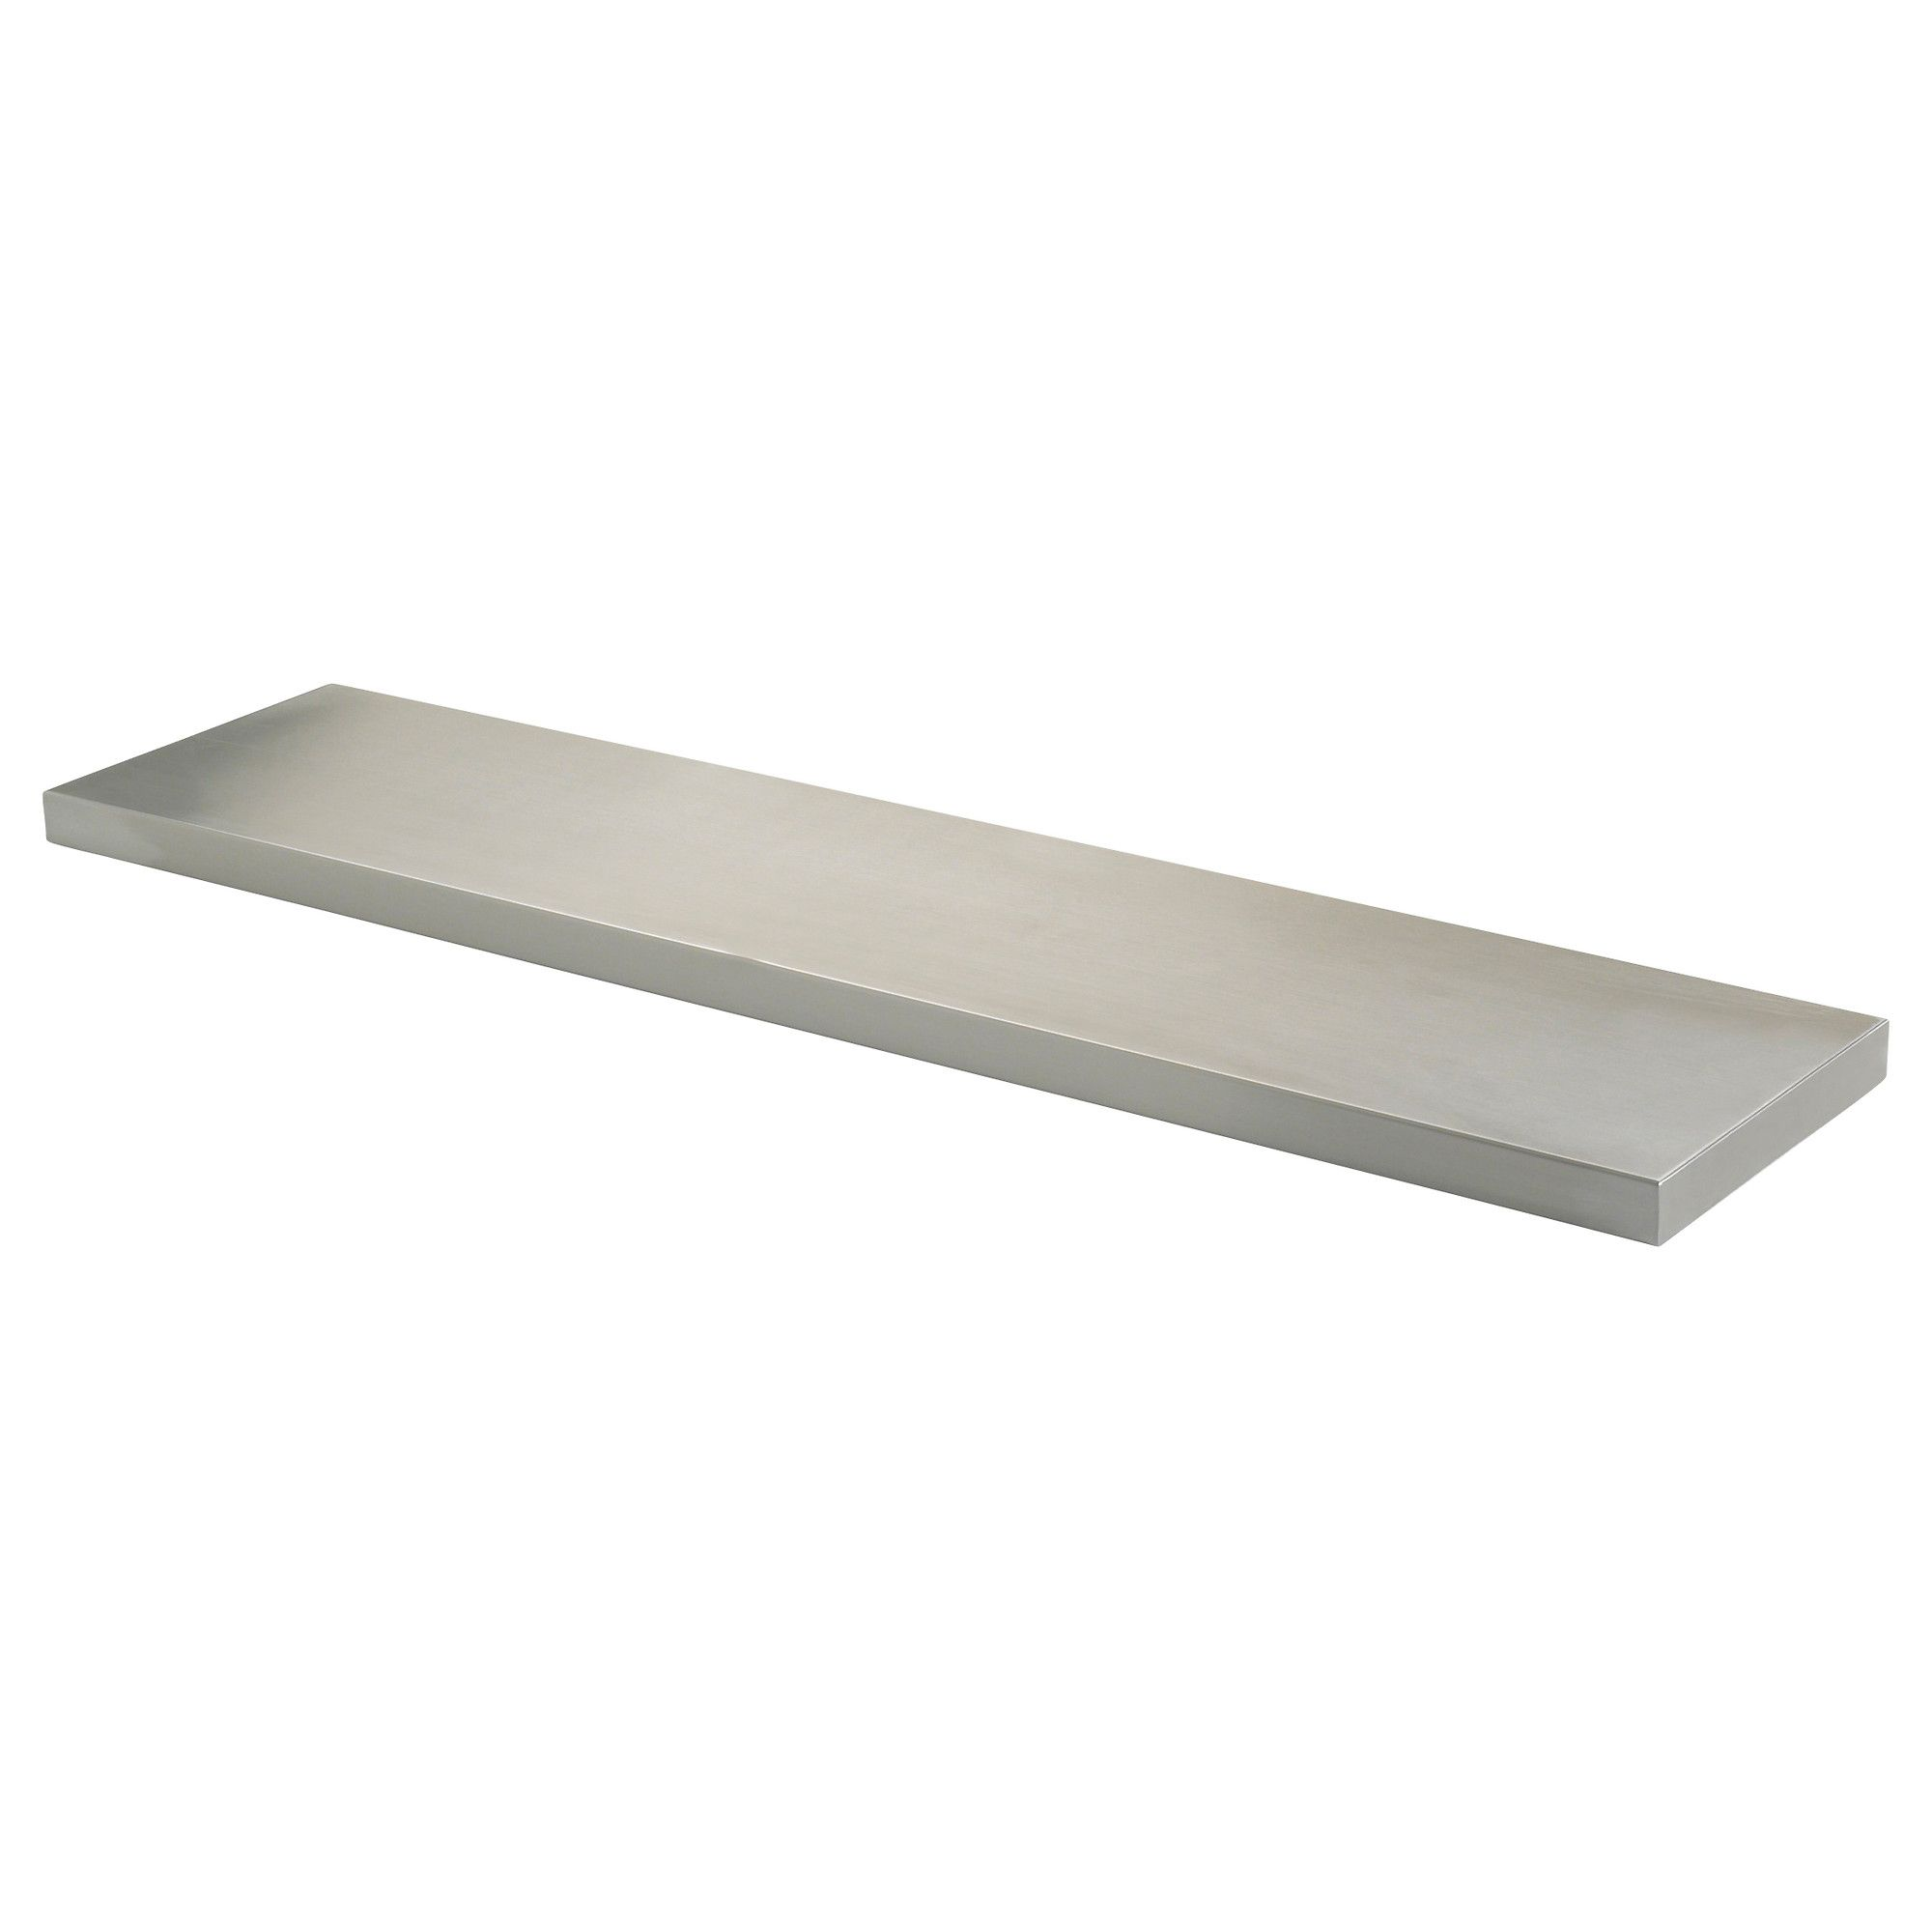 Design Stainless Steel Shelf ekby mossby shelf stainless steel shelves console tables and steel